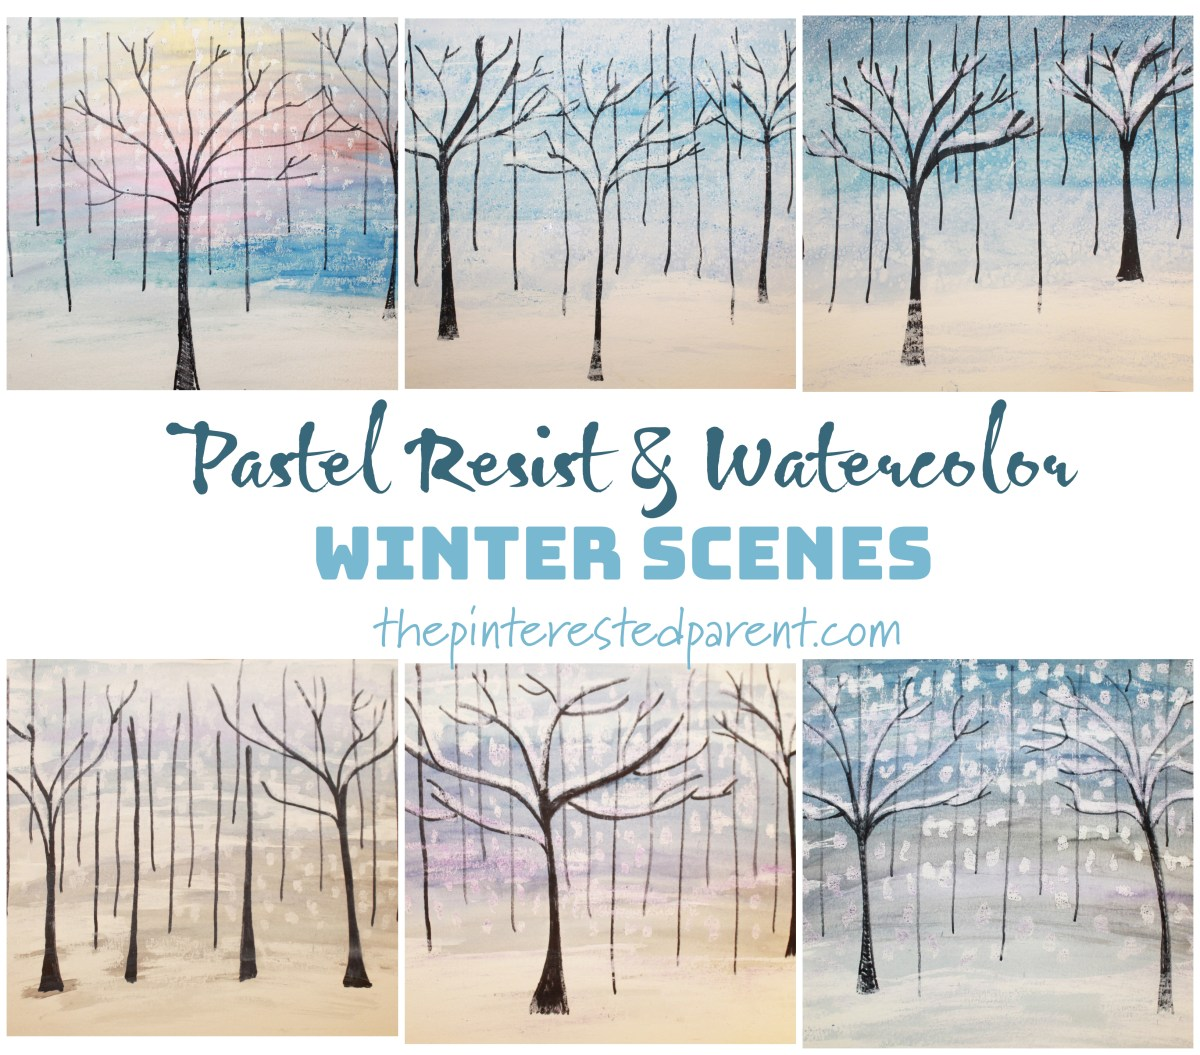 Pastel & Watercolor Winter Scenes